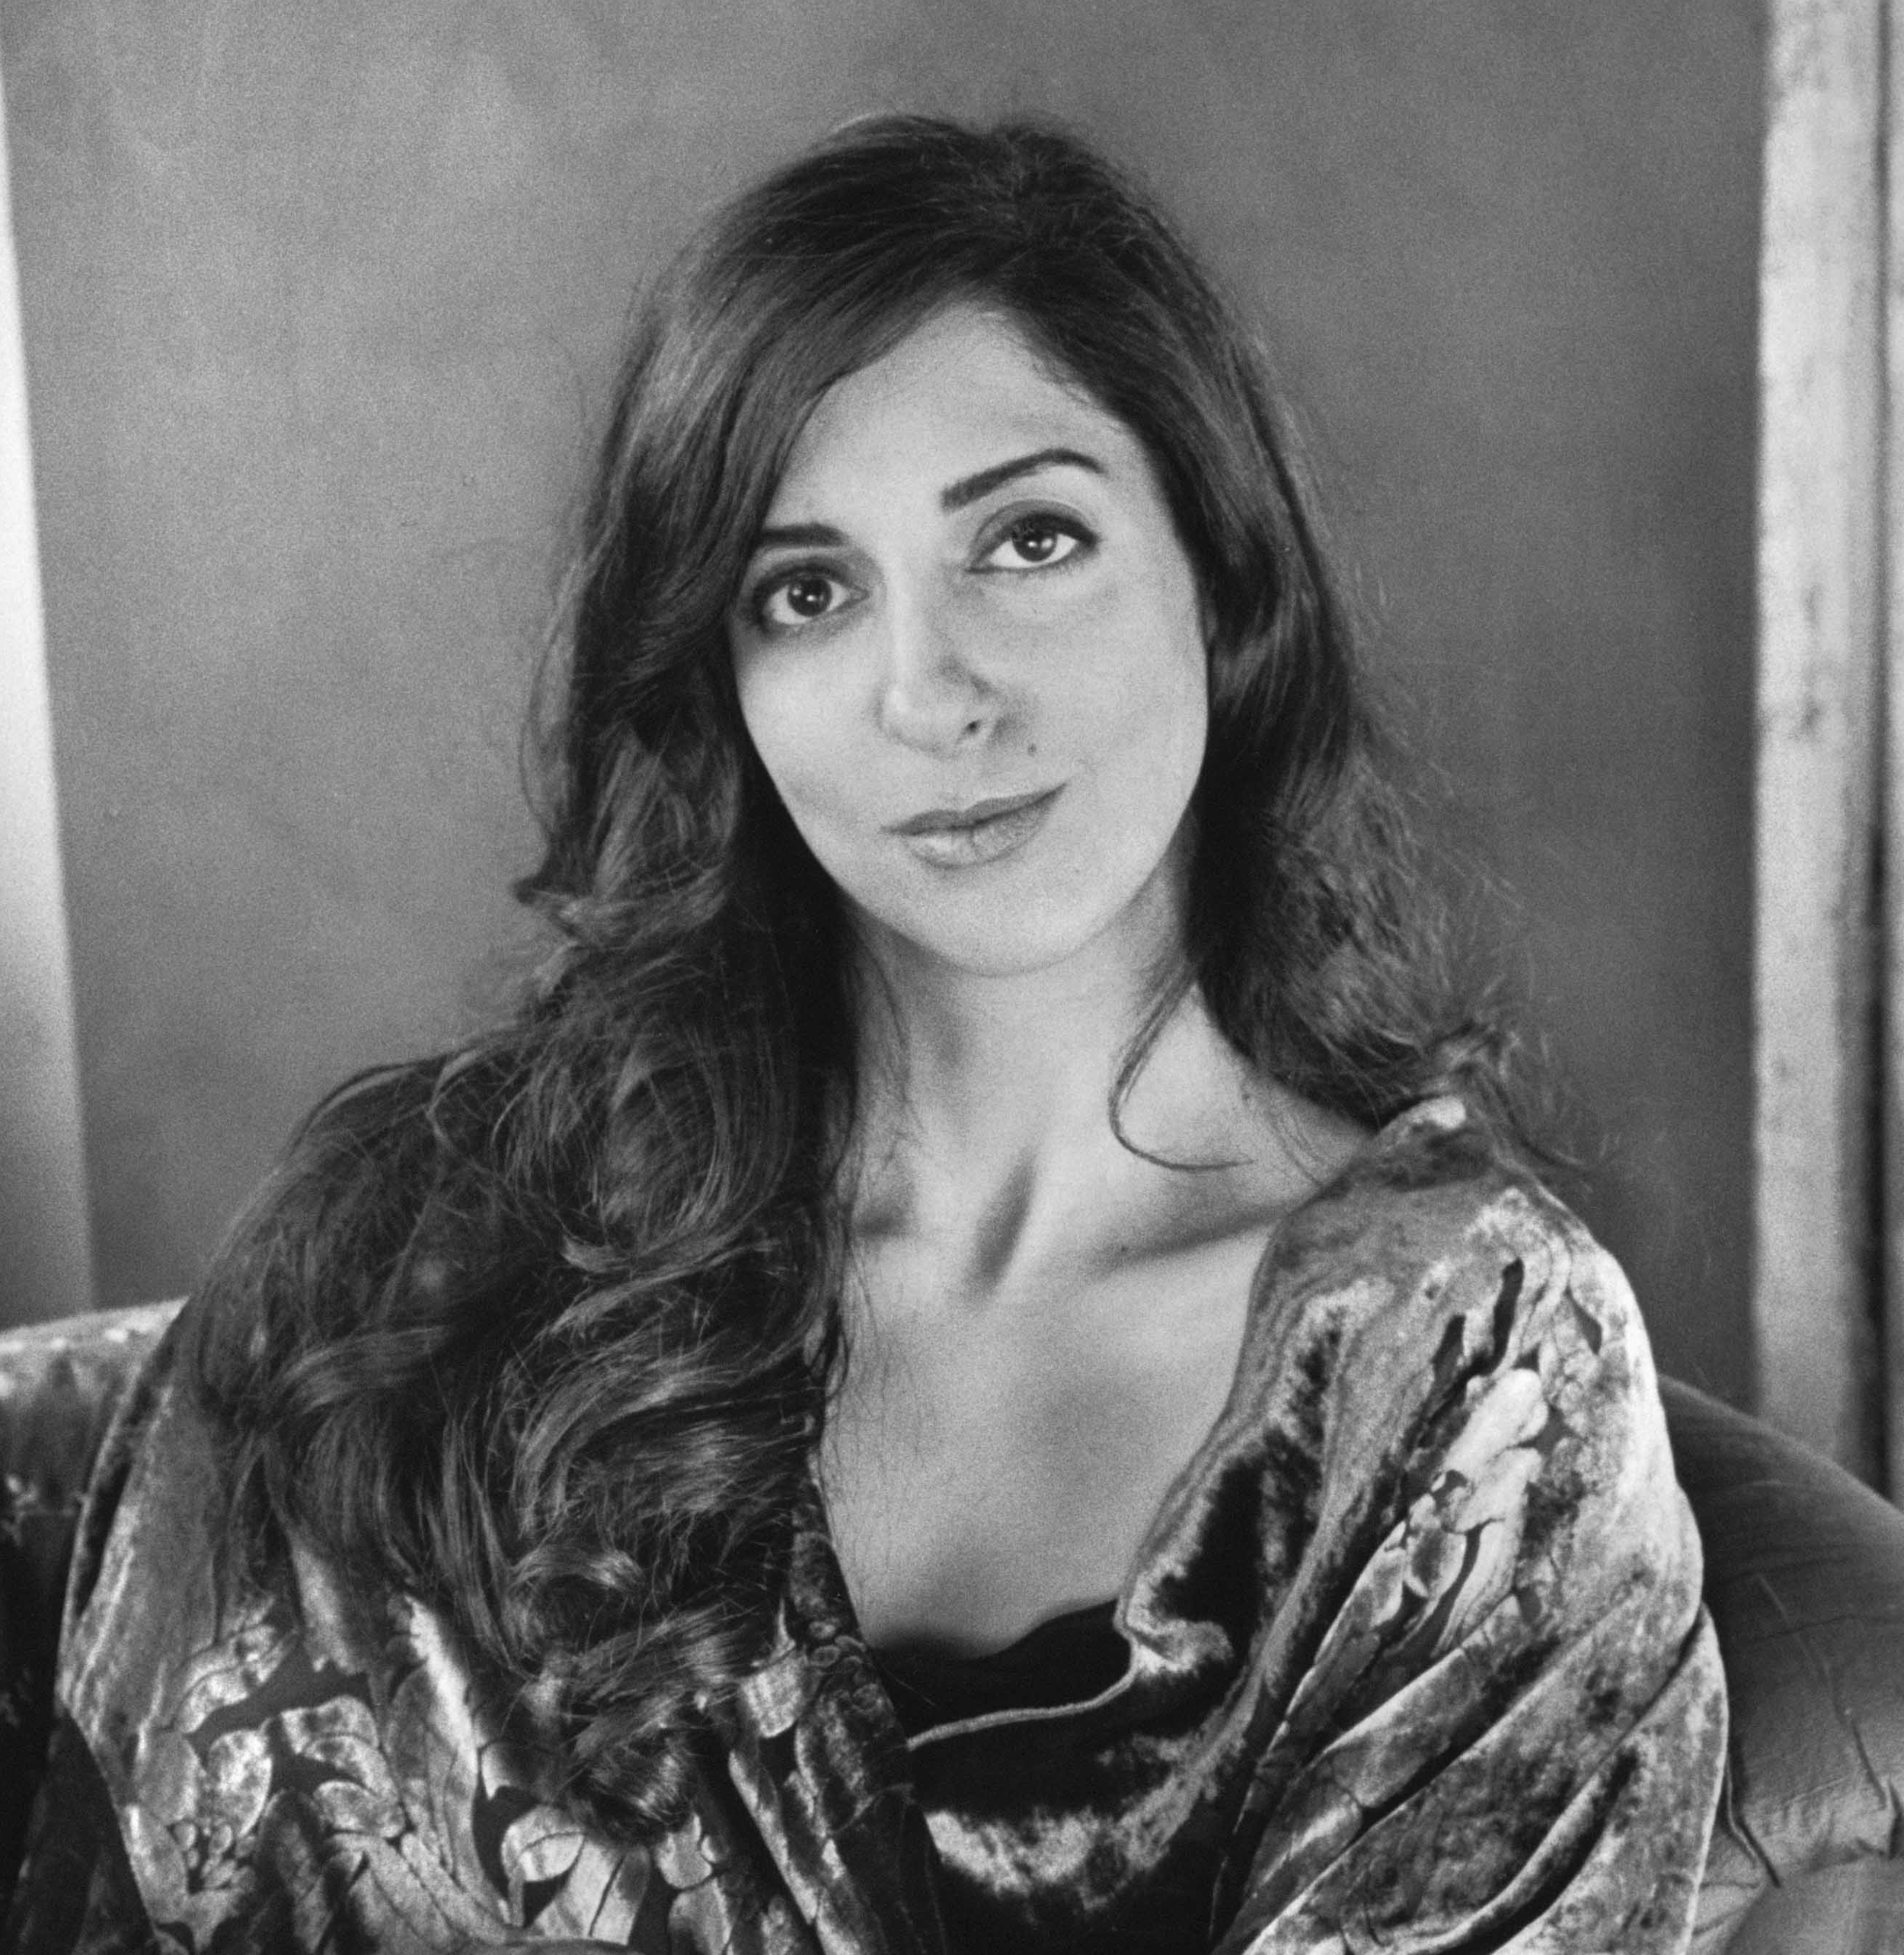 """About Porochista - Porochista Khakpour is the author of the forthcoming memoir Sick (Harper Perennial, June 2018) and the novels The Last Illusion (Bloomsbury, 2014)—a 2014 best book of the year according to NPR, Kirkus, BuzzFeed, PopMatters, Electric Literature and more—and Sons and Other Flammable Objects (Grove, 2007)—the 2007 California Book Award winner in """"First Fiction,"""" a Chicago Tribune """"Fall's Best"""" and a New York Times """"Editor's Choice."""" Her writing has appeared in the New York Times, the Los Angeles Times, the Wall Street Journal, Bookforum and Elle, on Al Jazeera America, Slate, Salon, Spin, CNN, and The Daily Beast, and in many other publications around the world. She's had fellowships from the National Endowment for the Arts, the University of Leipzig (Picador Guest Professorship), Yaddo, Ucross and Northwestern University's Academy for Alternative Journalism, among others. She was last writer- in-residence at Bard College, adjunct faculty at Columbia University and visiting faculty at Vermont College of Fine Arts's MFA program. Born in Tehran and raised in the Los Angeles area, she lives in New York City's Harlem."""